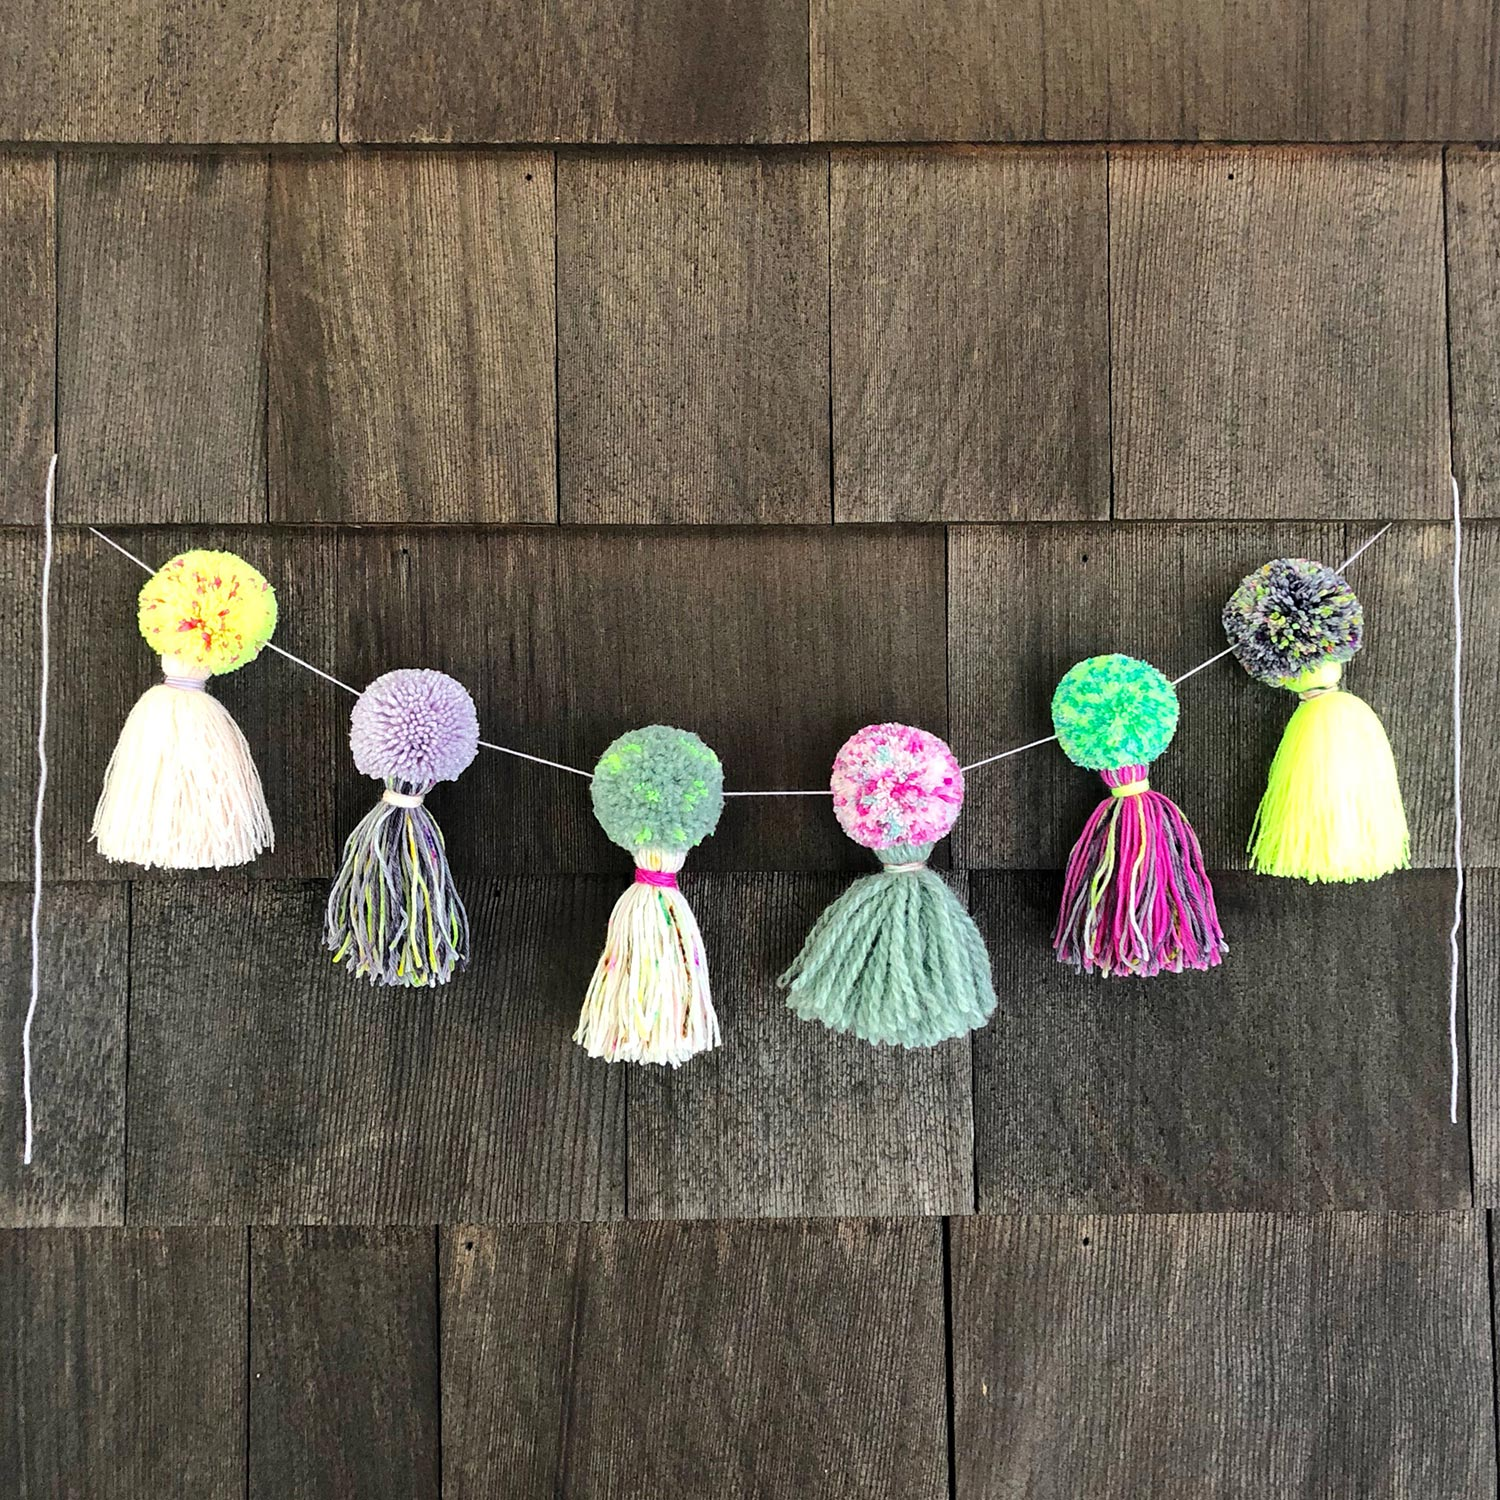 The Neon Tea Party Pom Pom Garland